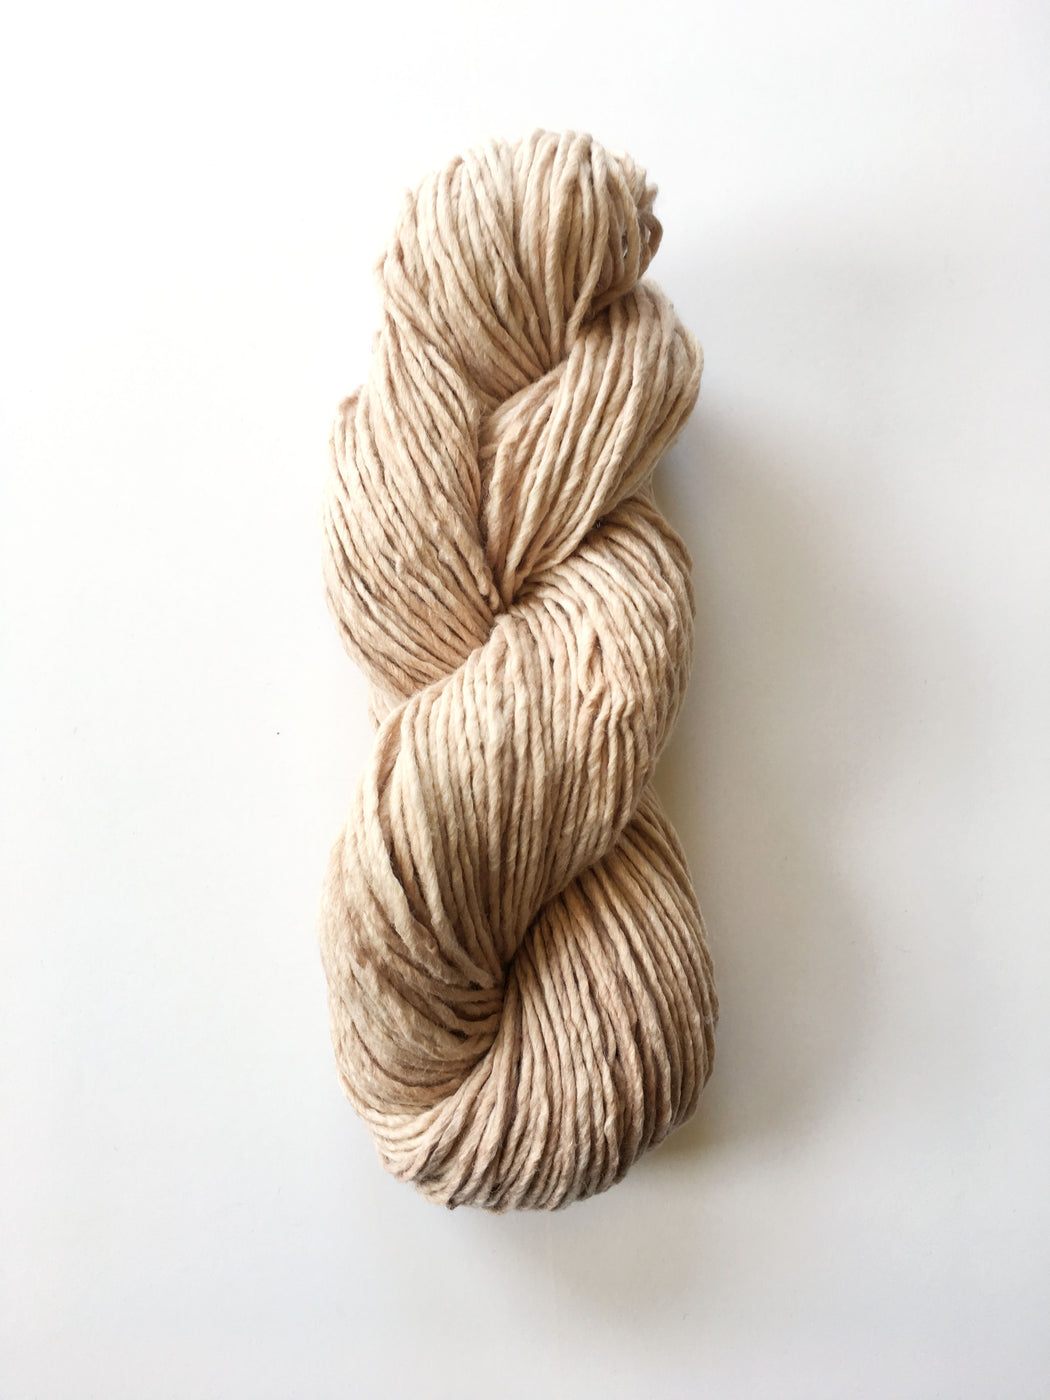 Mulberry Merino in Naturally Dyed in Sandstone